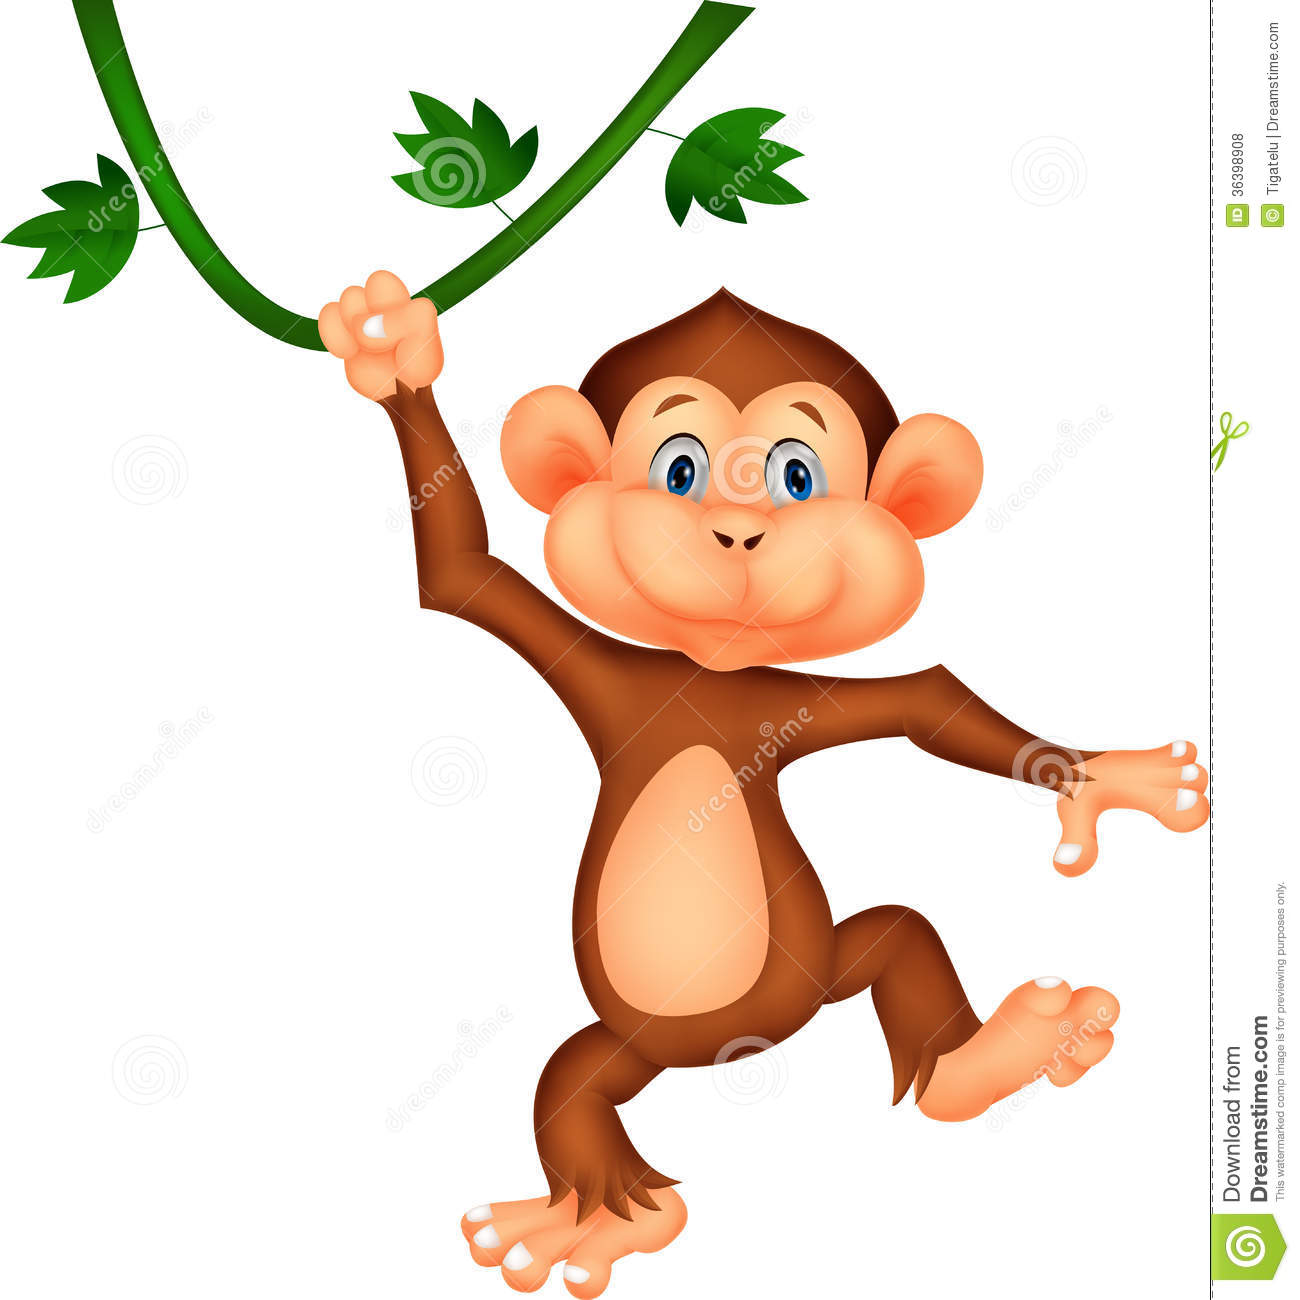 hanging monkeys tulum smsender co rh tulum smsender co cute hanging monkey clipart cute hanging monkey clipart